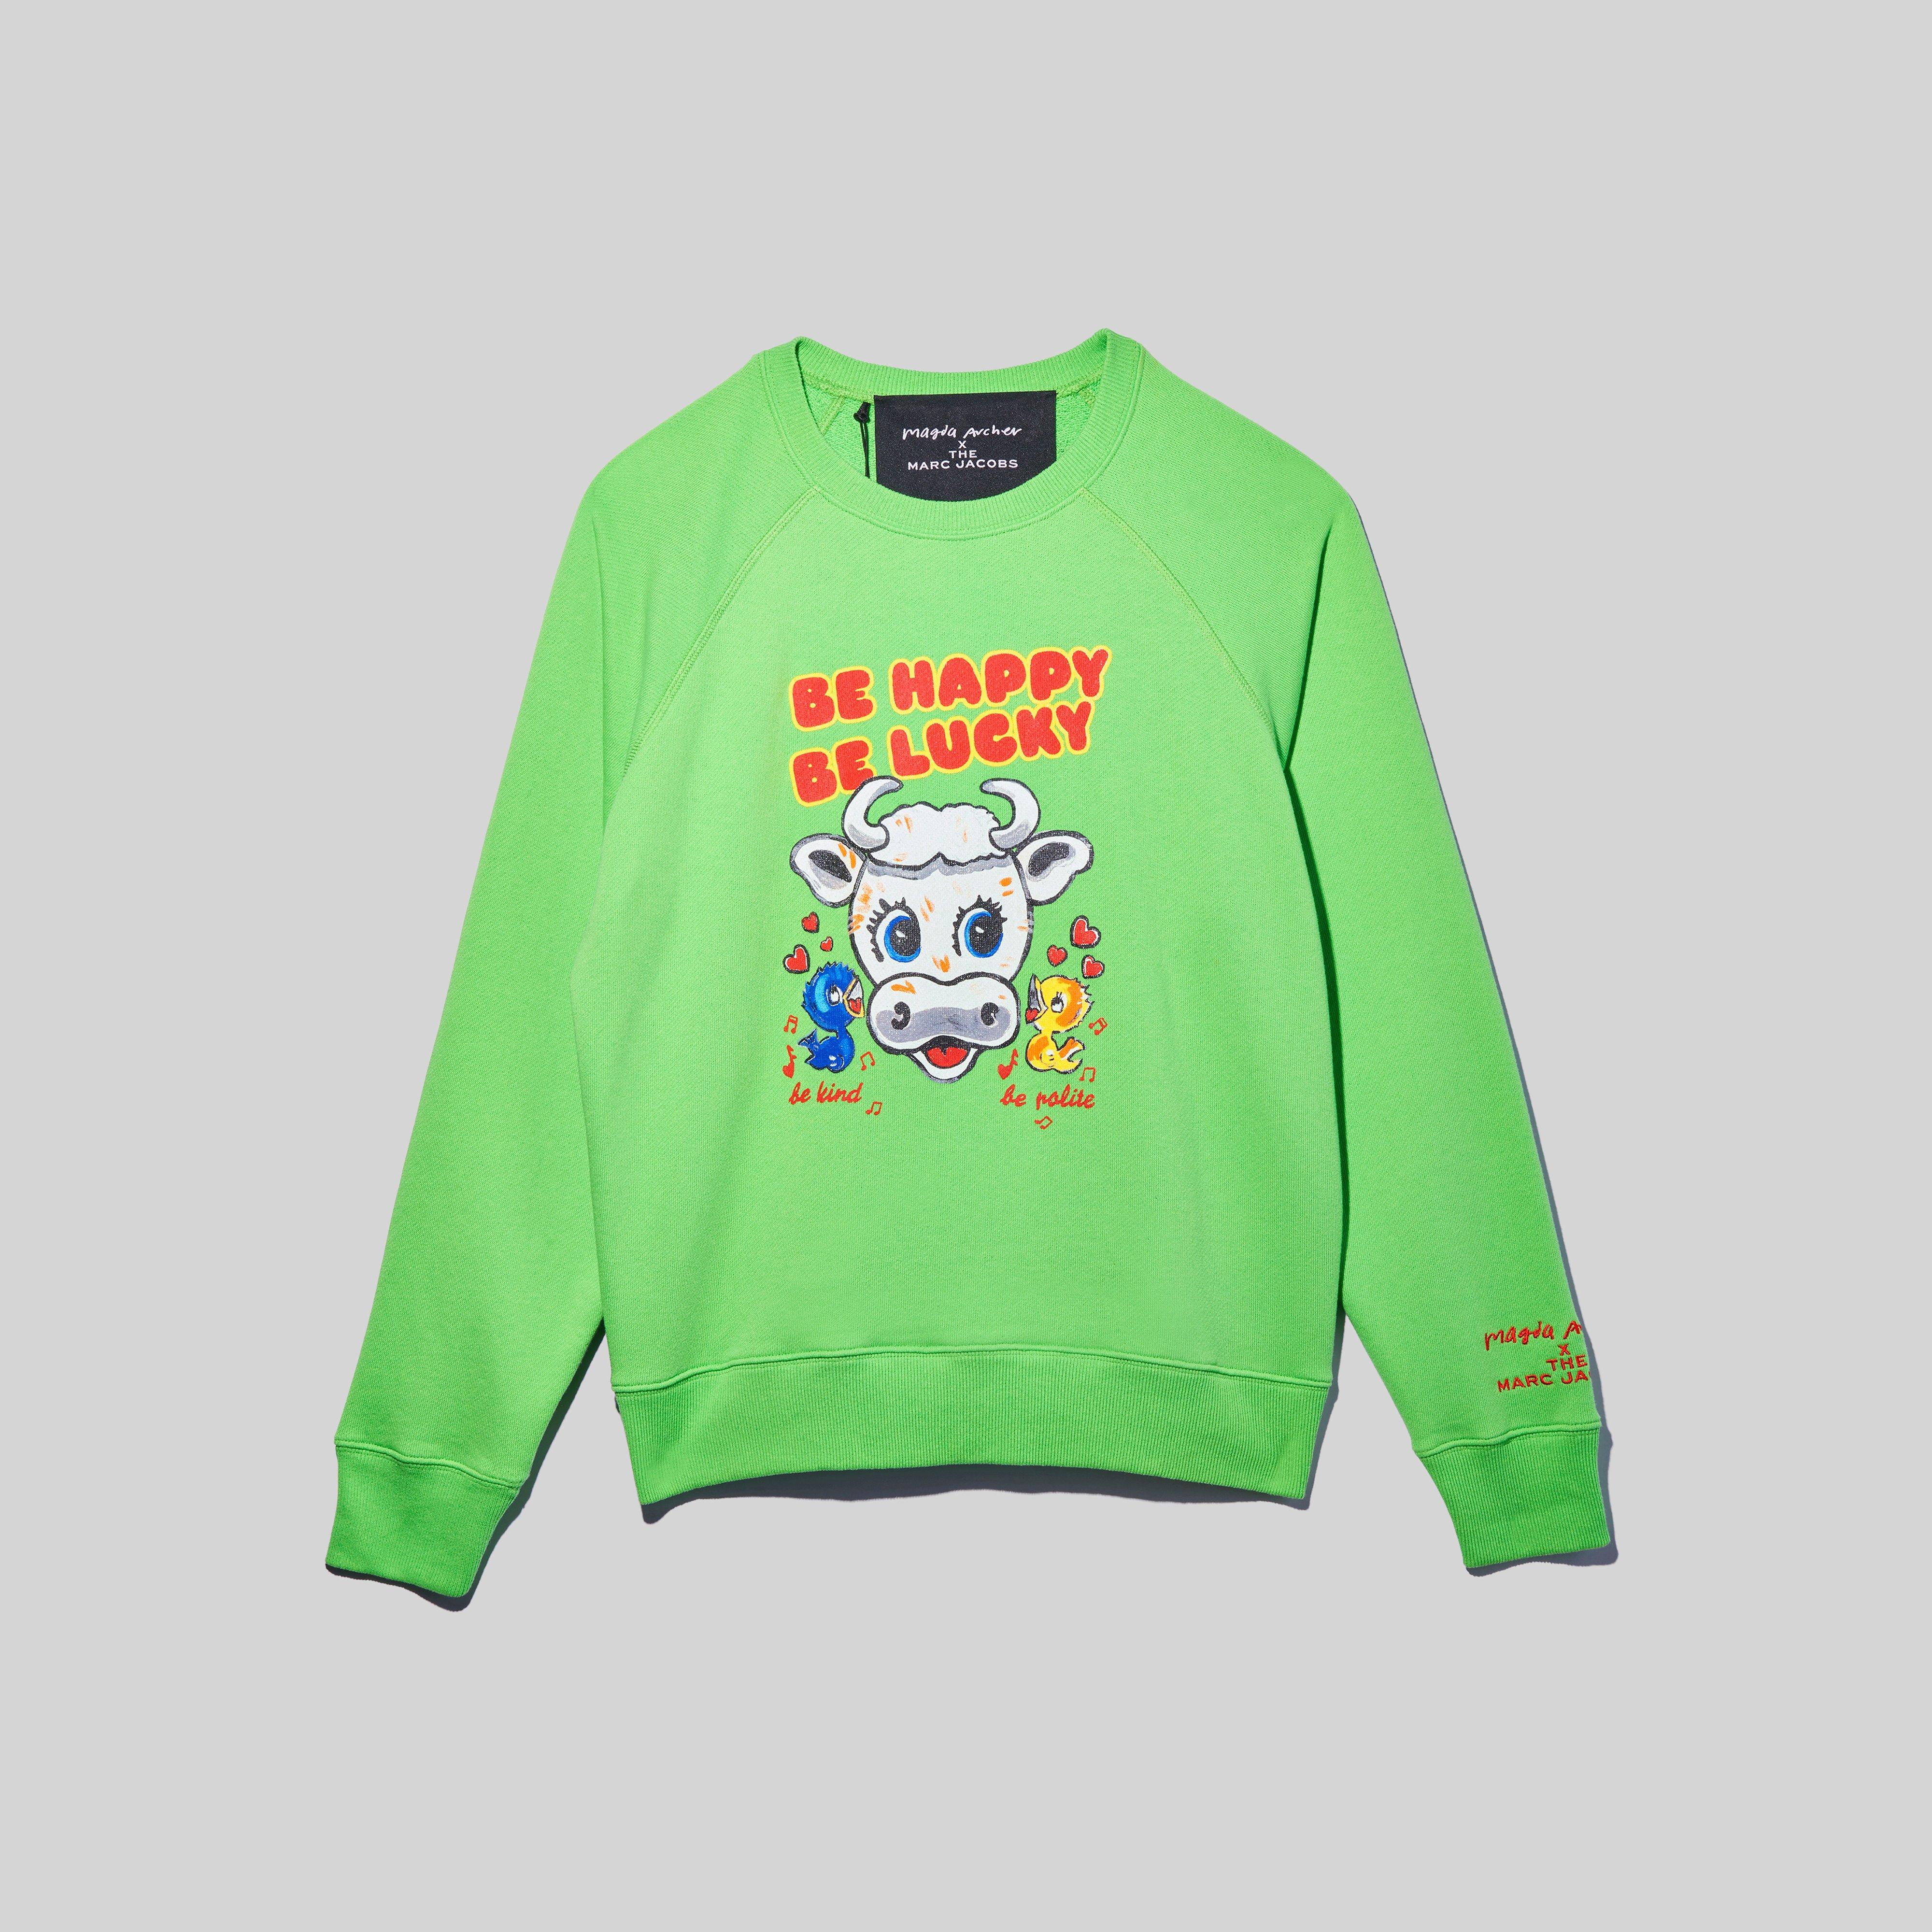 Marc Jacobs Magda Archer x The Collaboration Sweatshirt Marc Jacobs